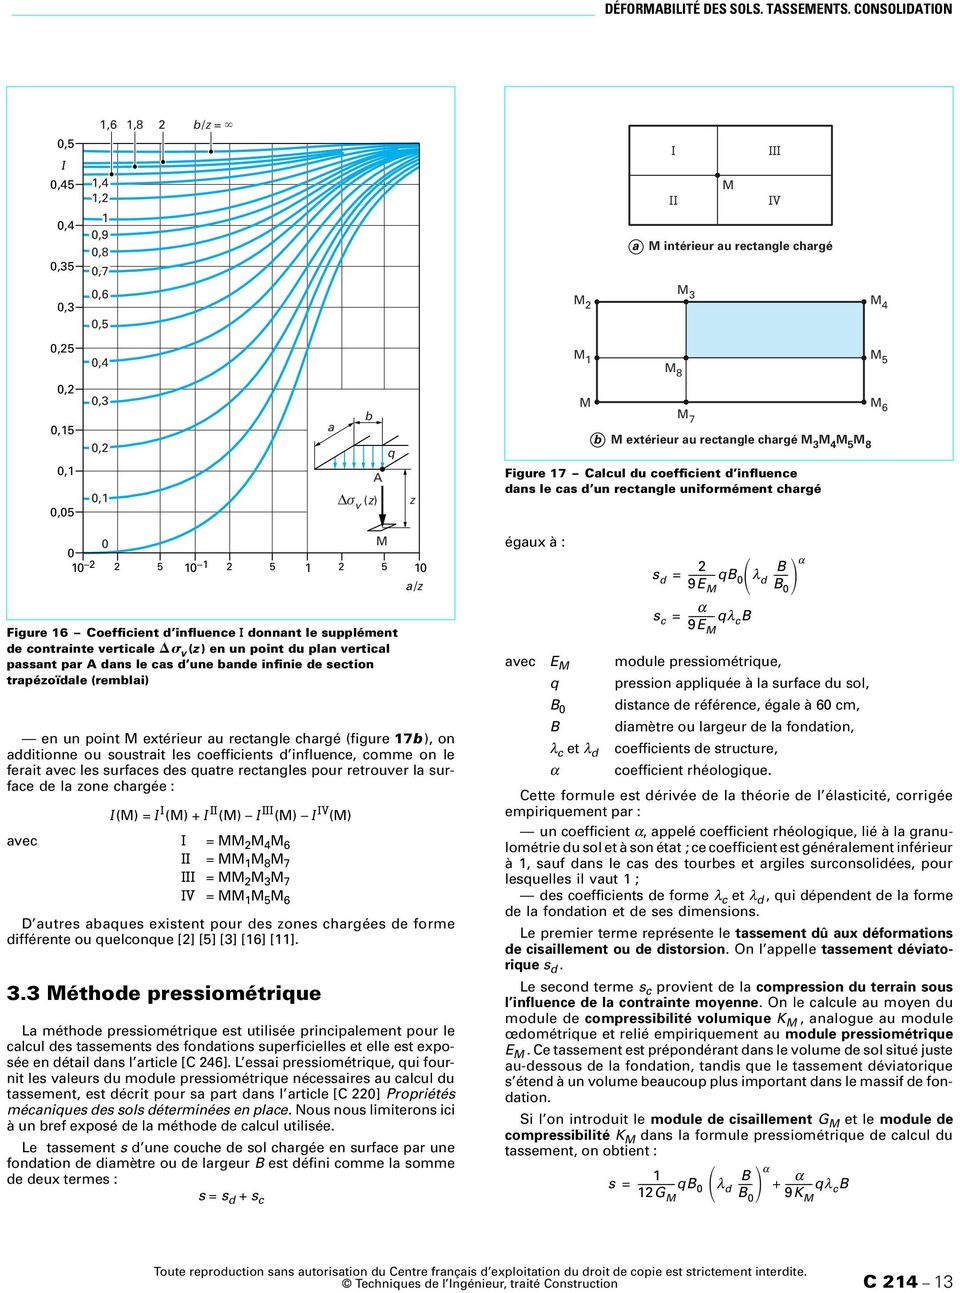 M 3 M 4 M 5 M 8 Figure 7 Calcul du coefficient d influence dans le cas d un rectangle uniformément chargé M 6 2 2 5 Figure 6 Coefficient d influence I donnant le supplément de contrainte verticale v